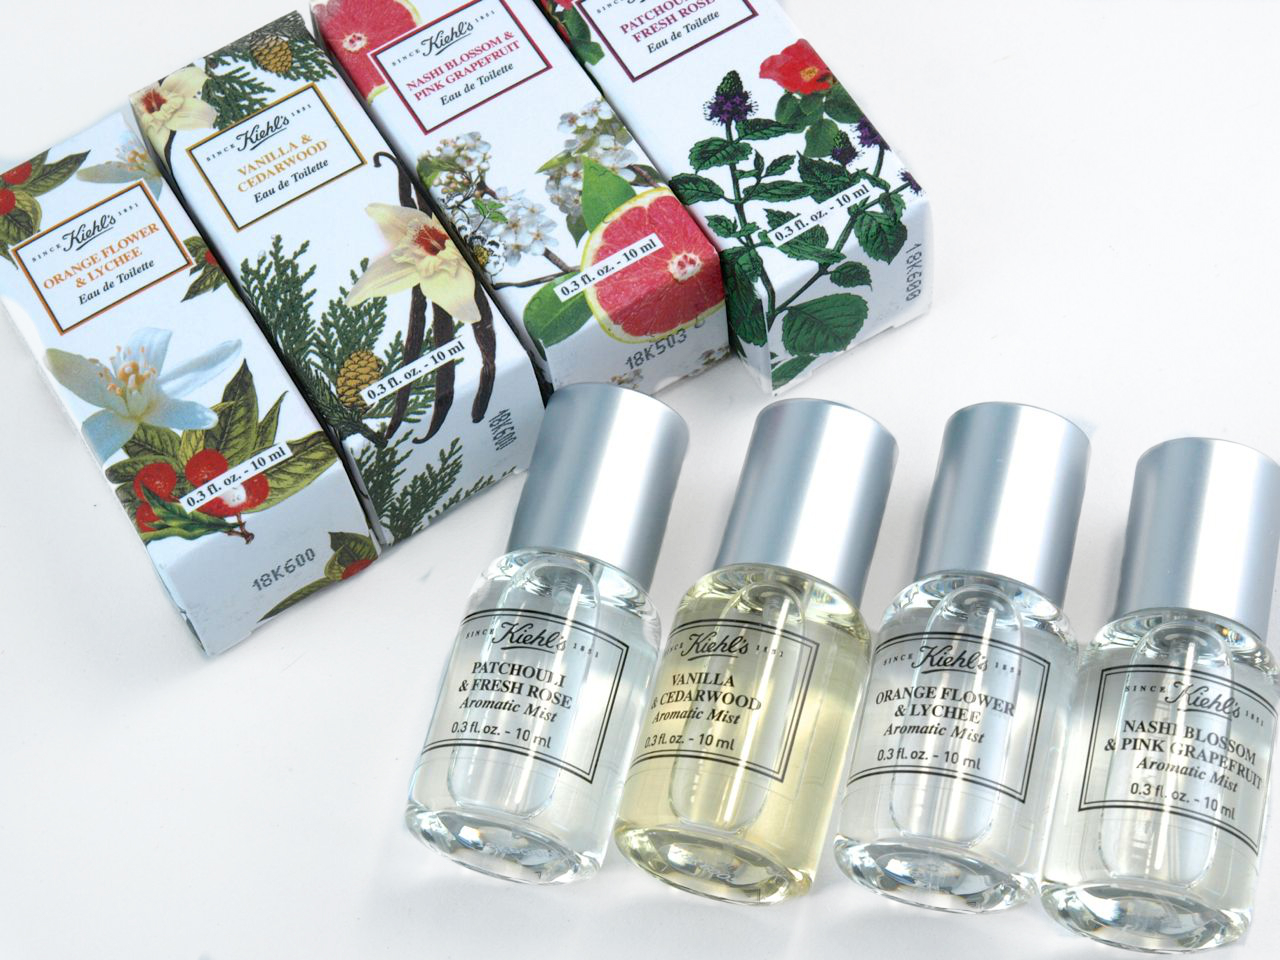 Kiehl's Aromatic Mist Fragrance Set: Review